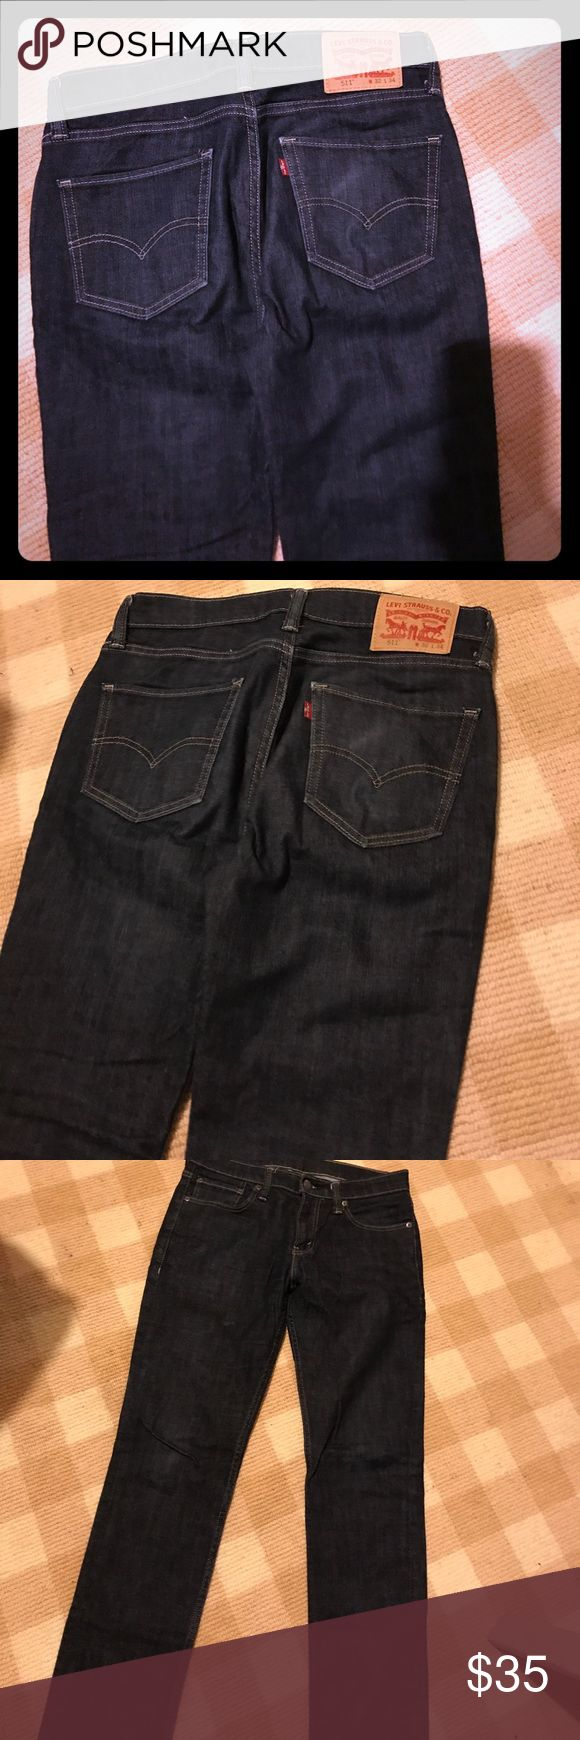 Men's New Levis Jeans -32X34 New Without tags -  511 -32x34 Levi's Jeans Straight